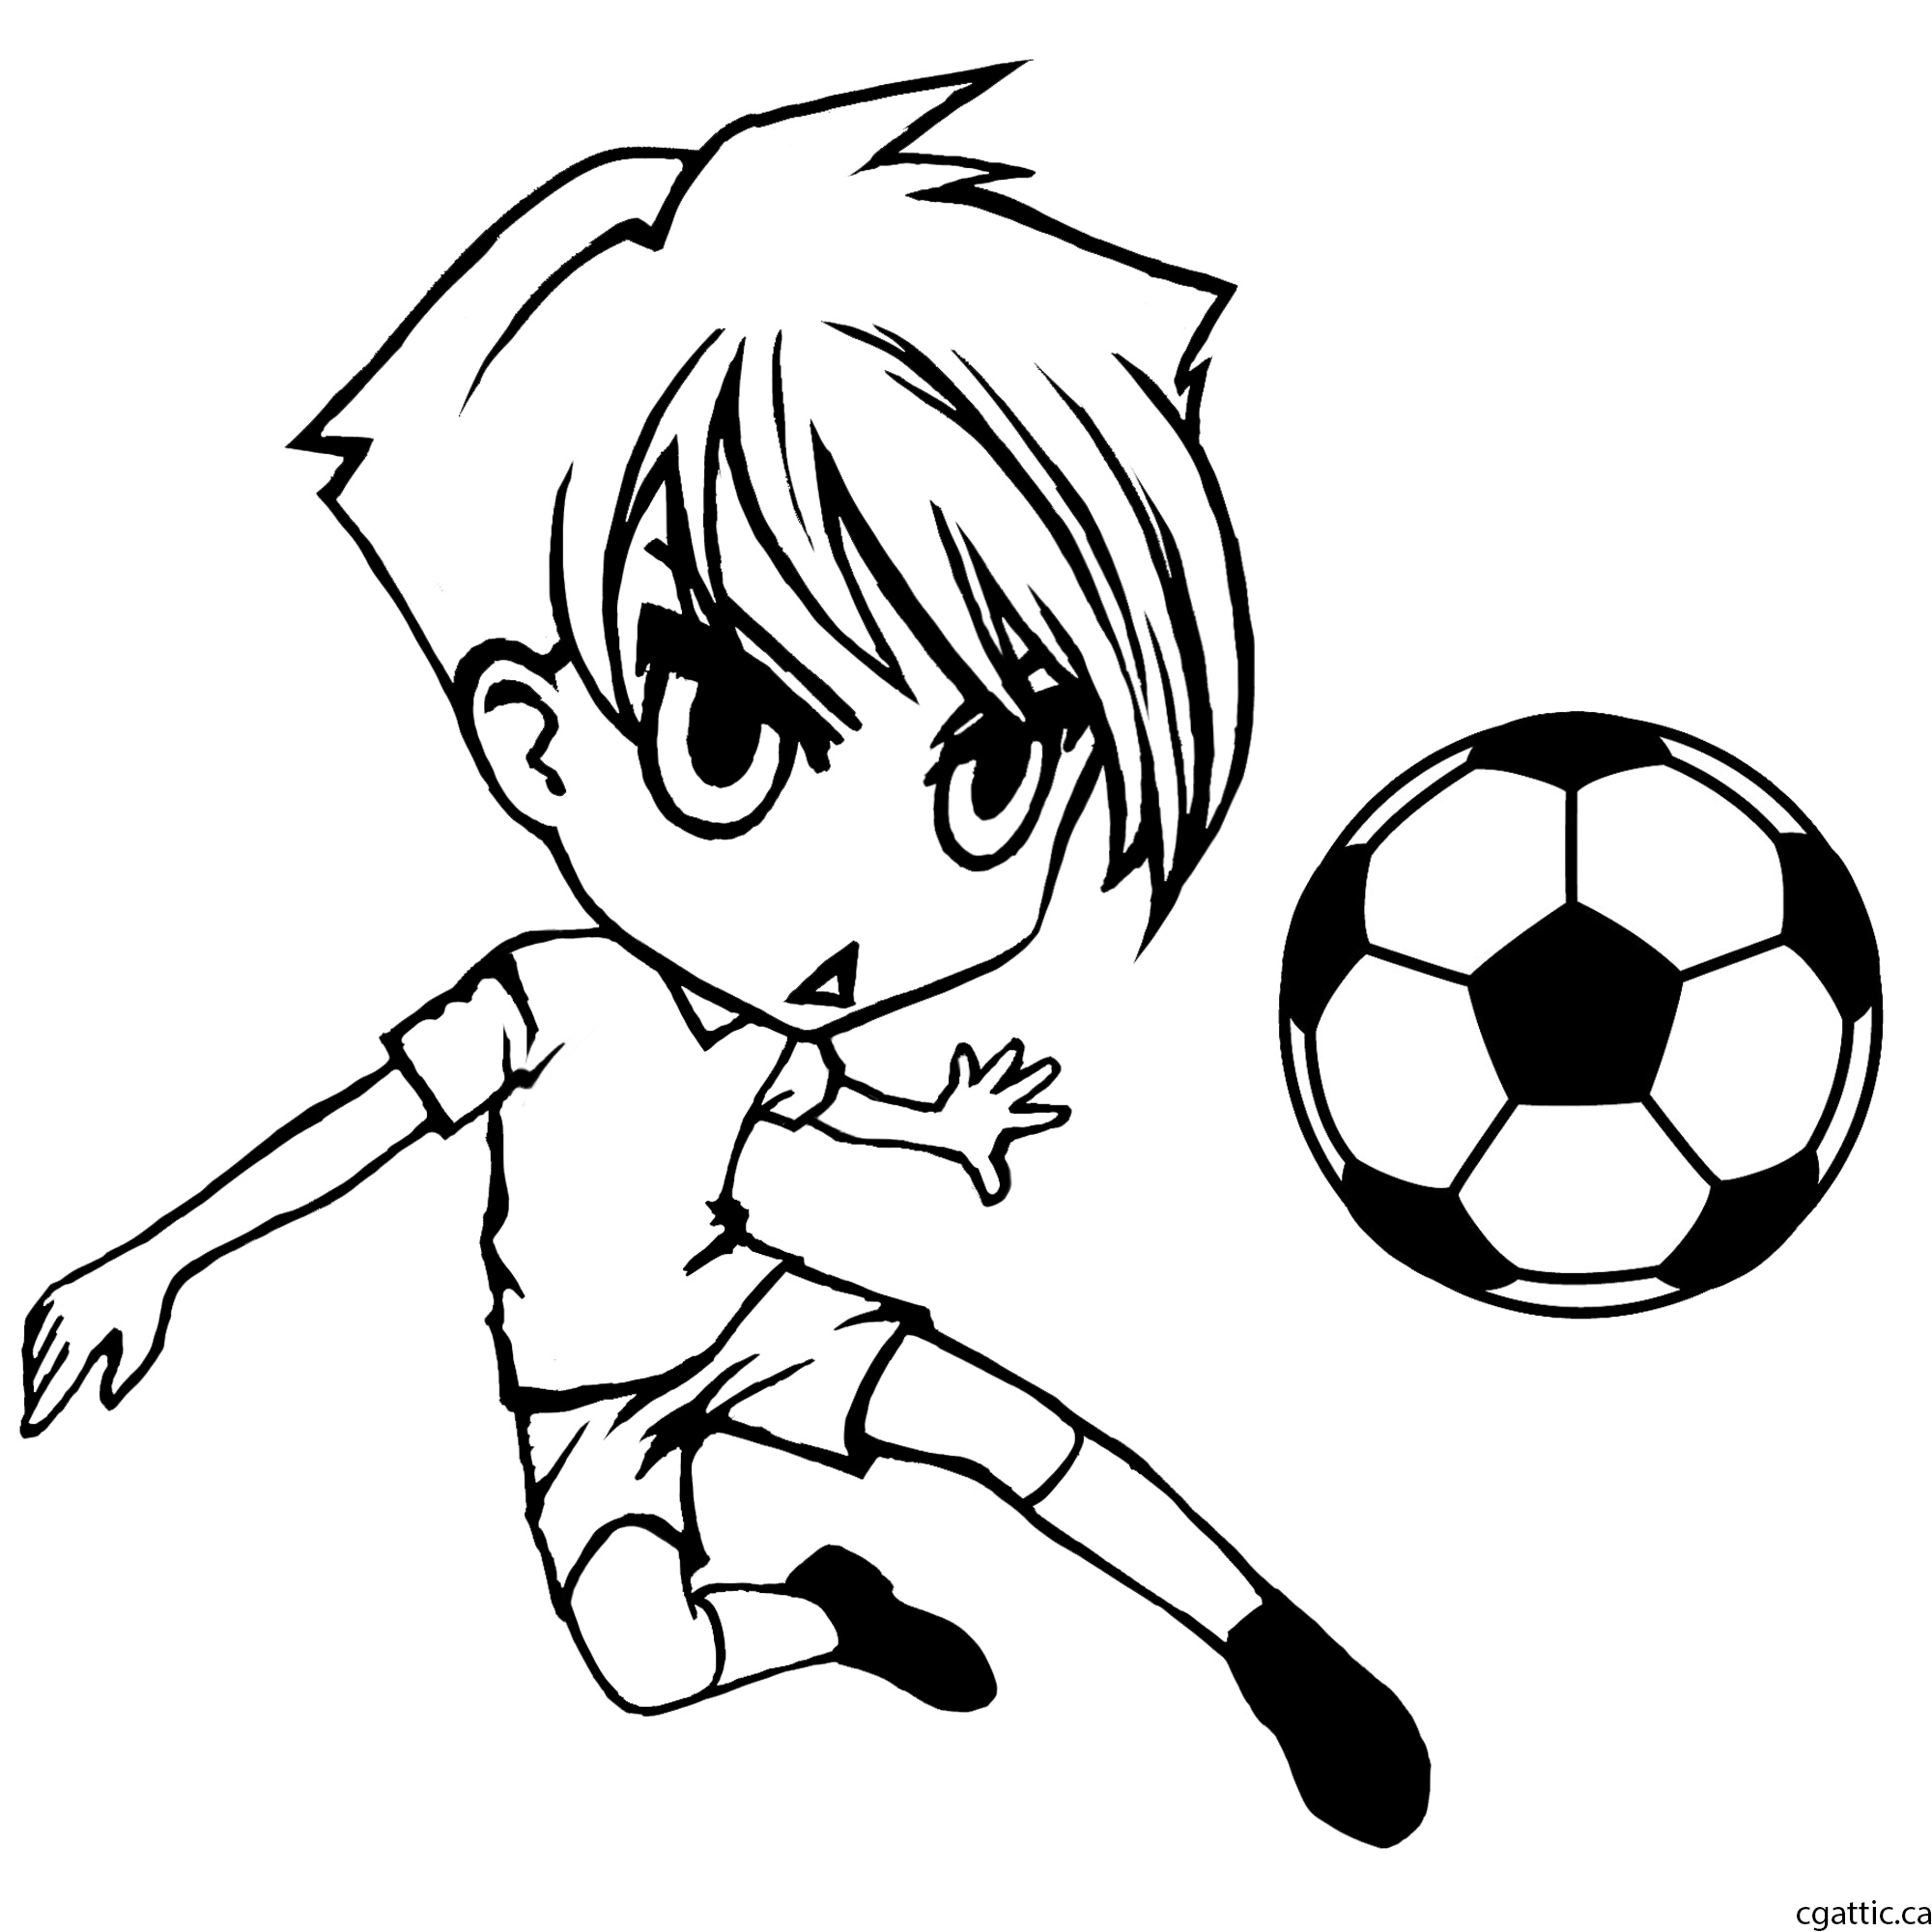 a drawing of a football player soccer player graphite pencil drawing football player of drawing a a